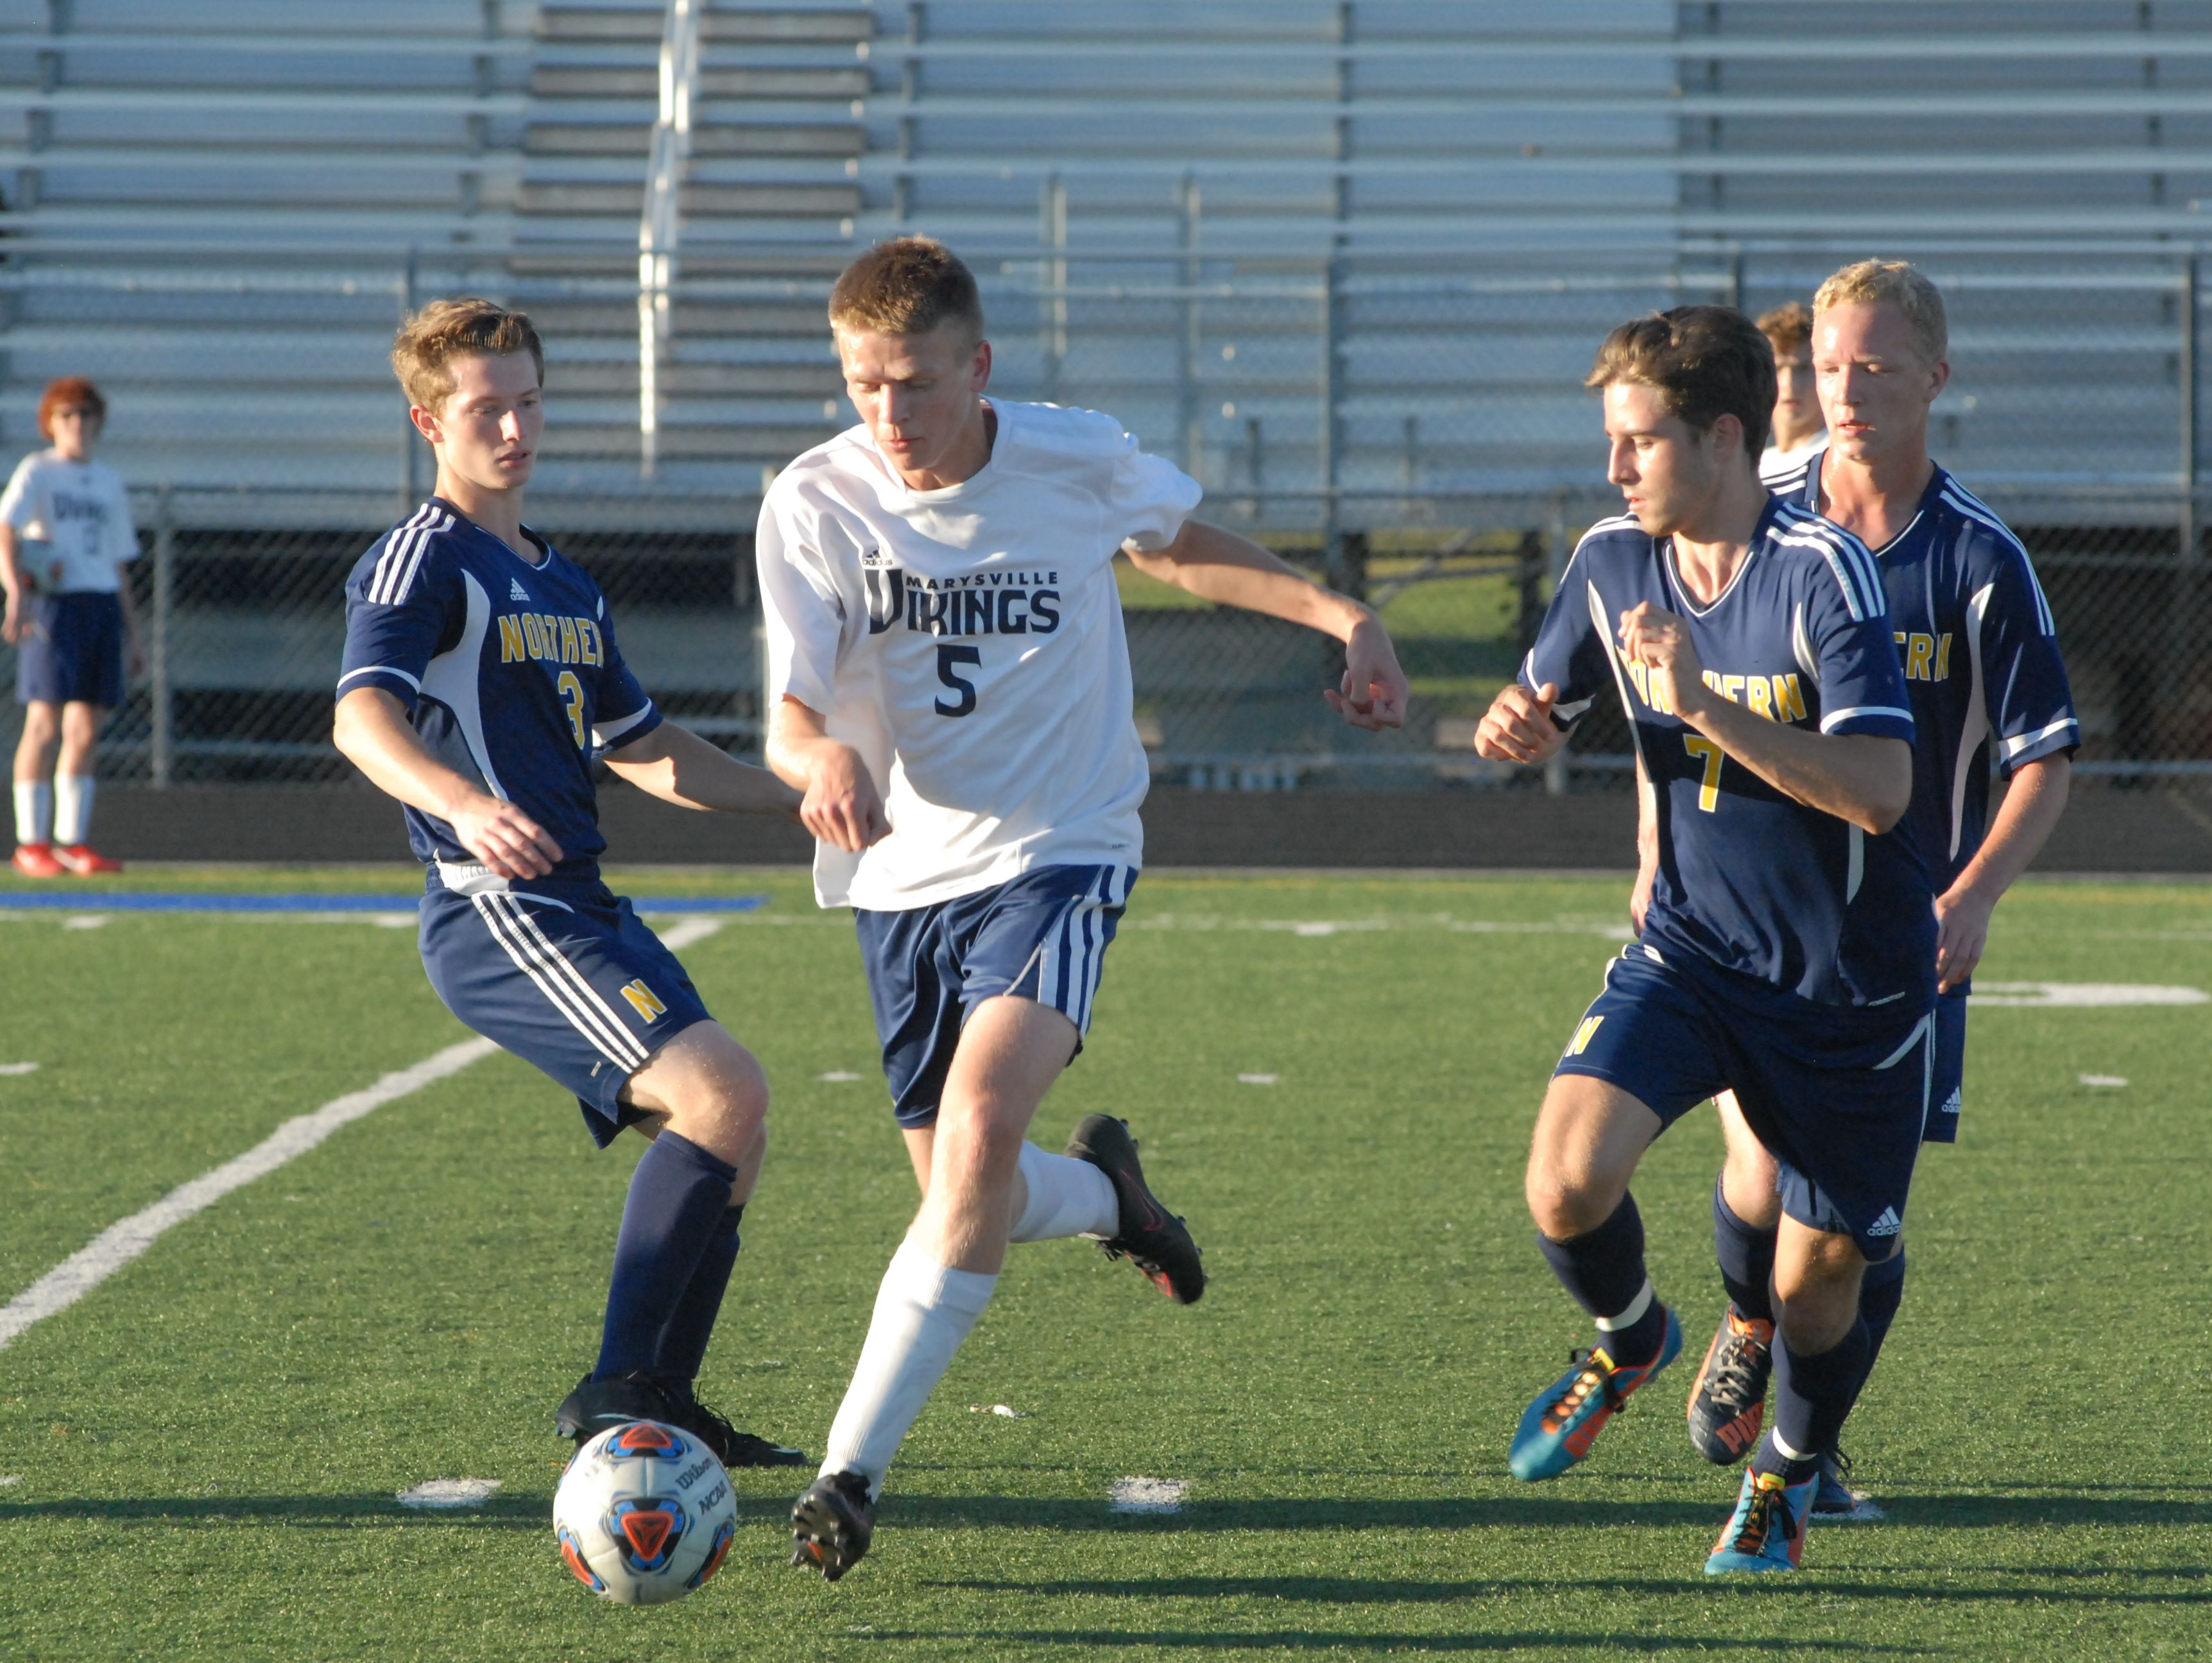 Marysville's Alex Chitwood dribbles the ball through traffic in the first half of the Vikings 2-1 win on Sept. 14, 2016.